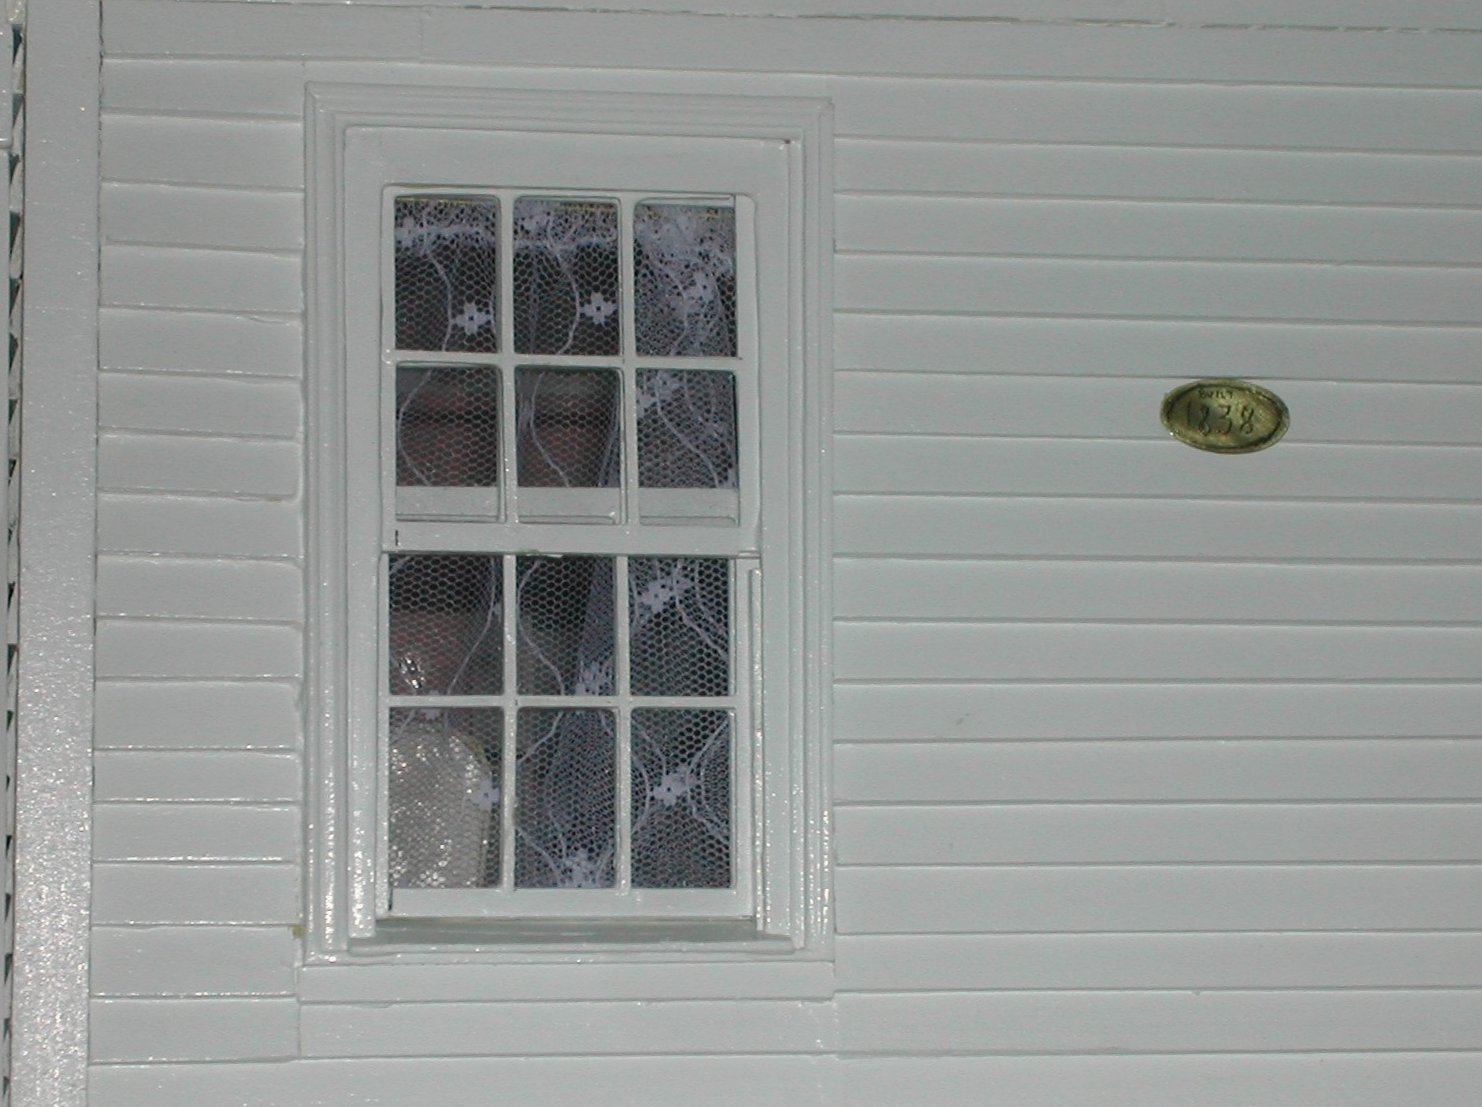 Outside House Windows In the real house, there are